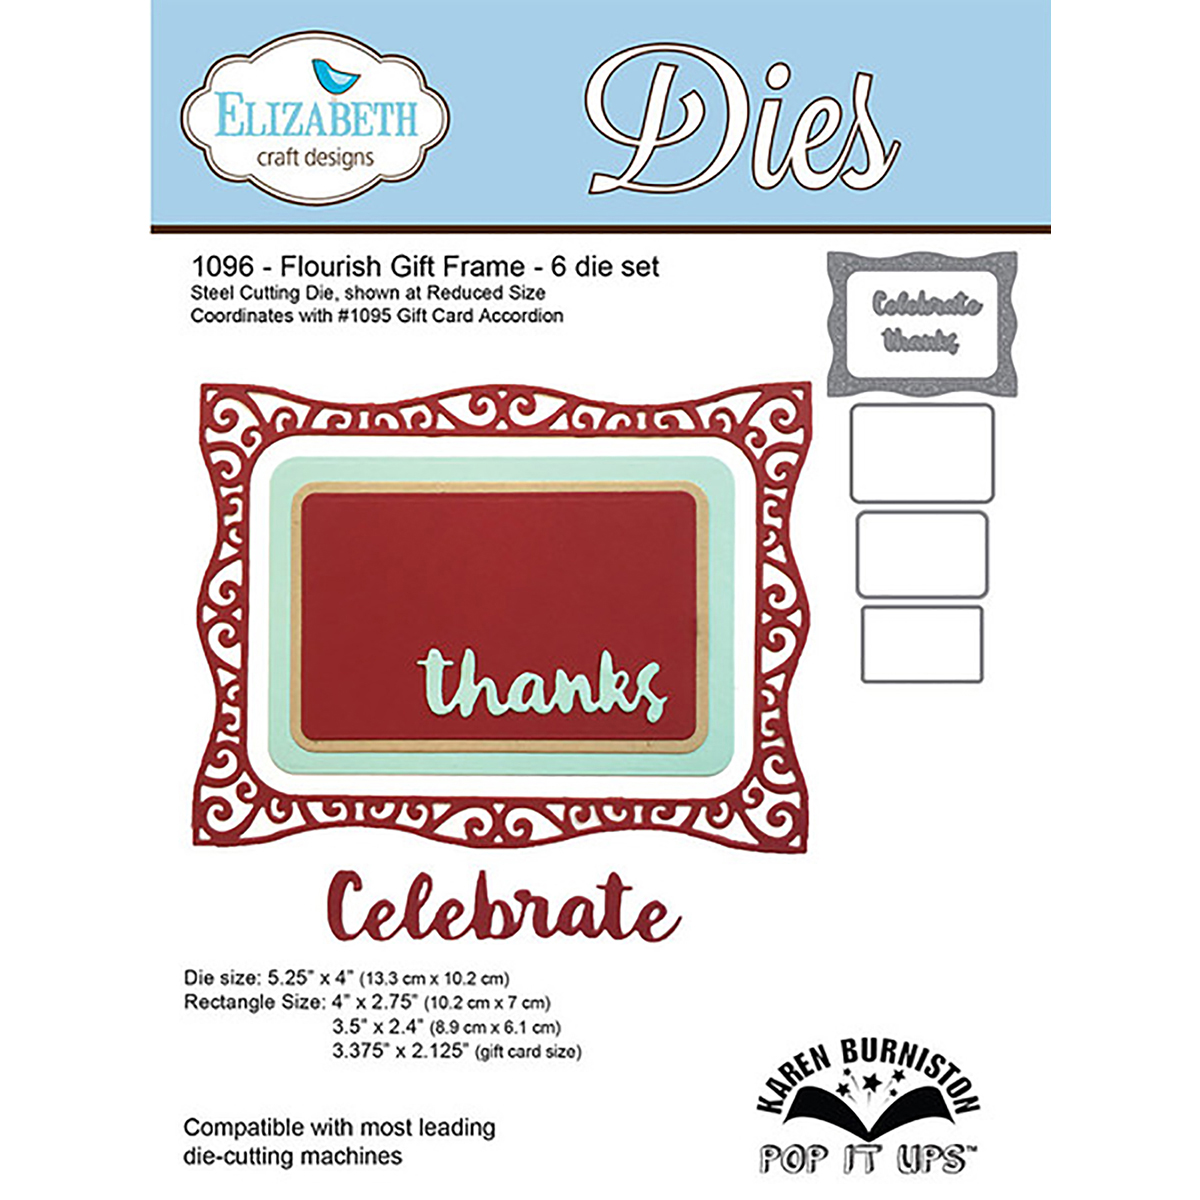 Elizabeth Craft Pop It Up Metal Dies By Karen Burniston-Flourish Gift Frame, 2.125 To 5.25""